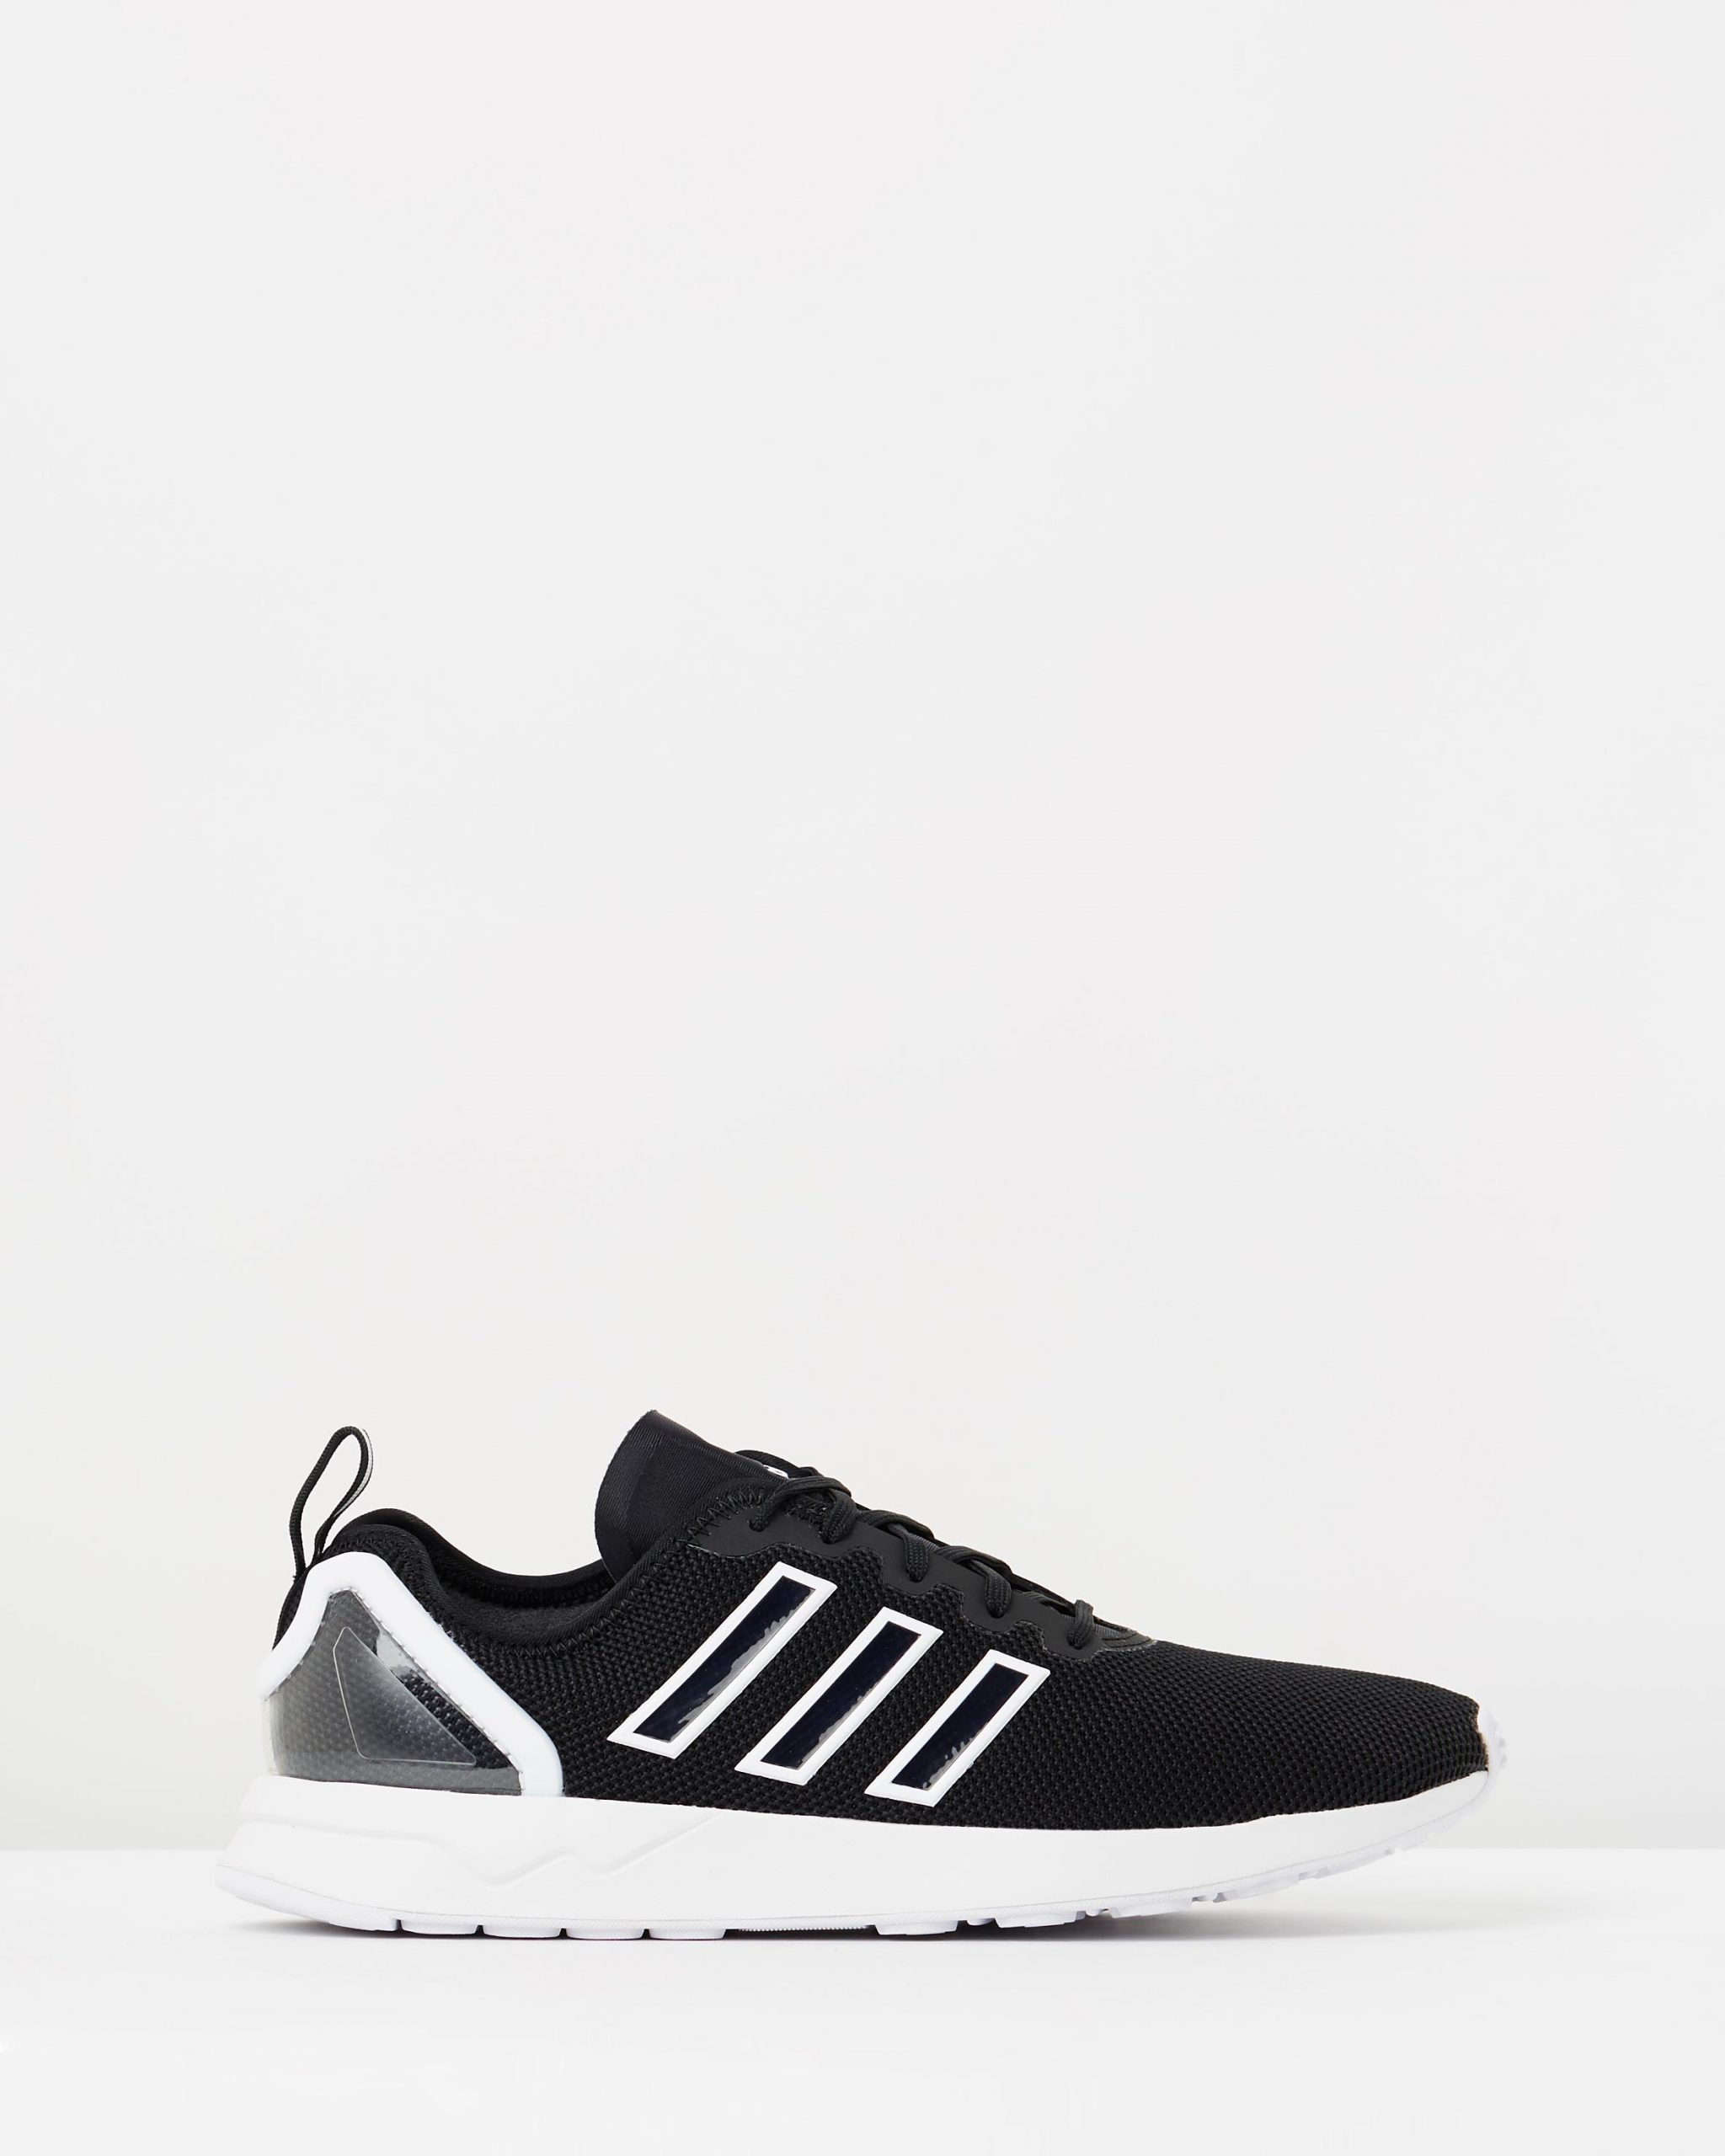 Adidas Men's ZX Flux ADV Black & White